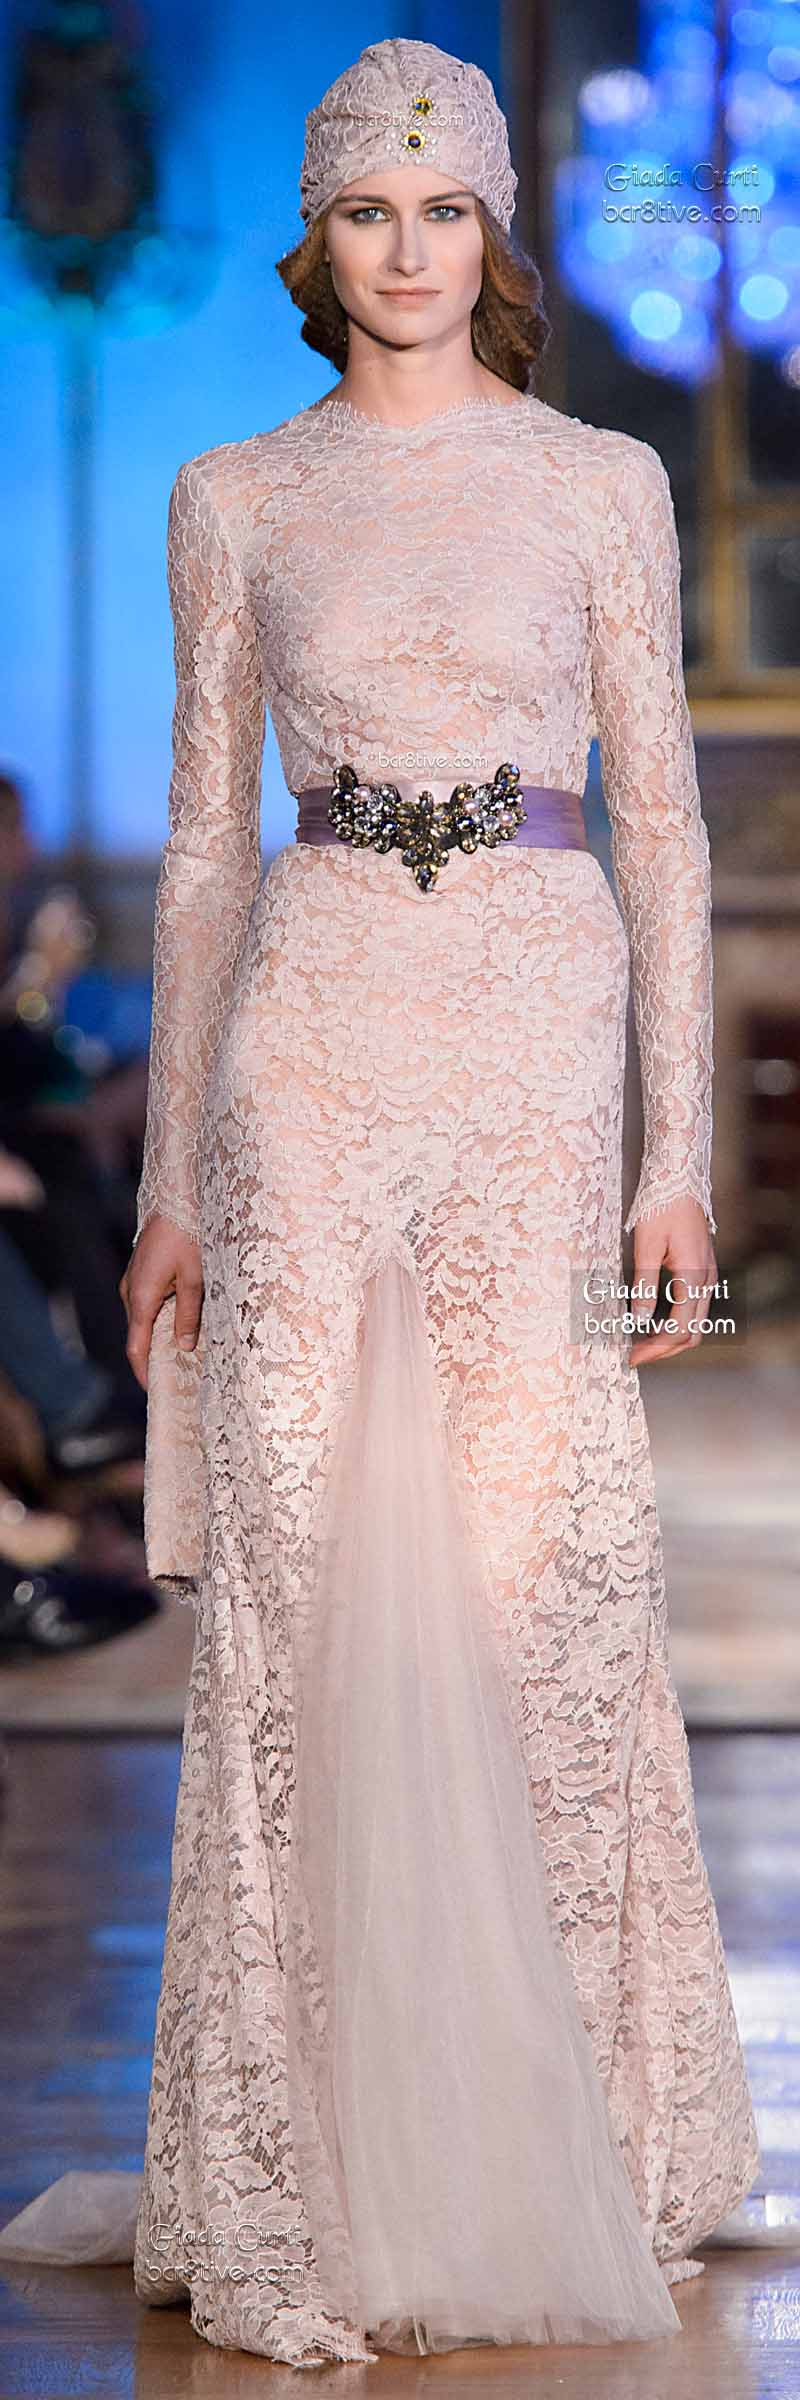 Giada Curti Shukran Haute Couture Collection